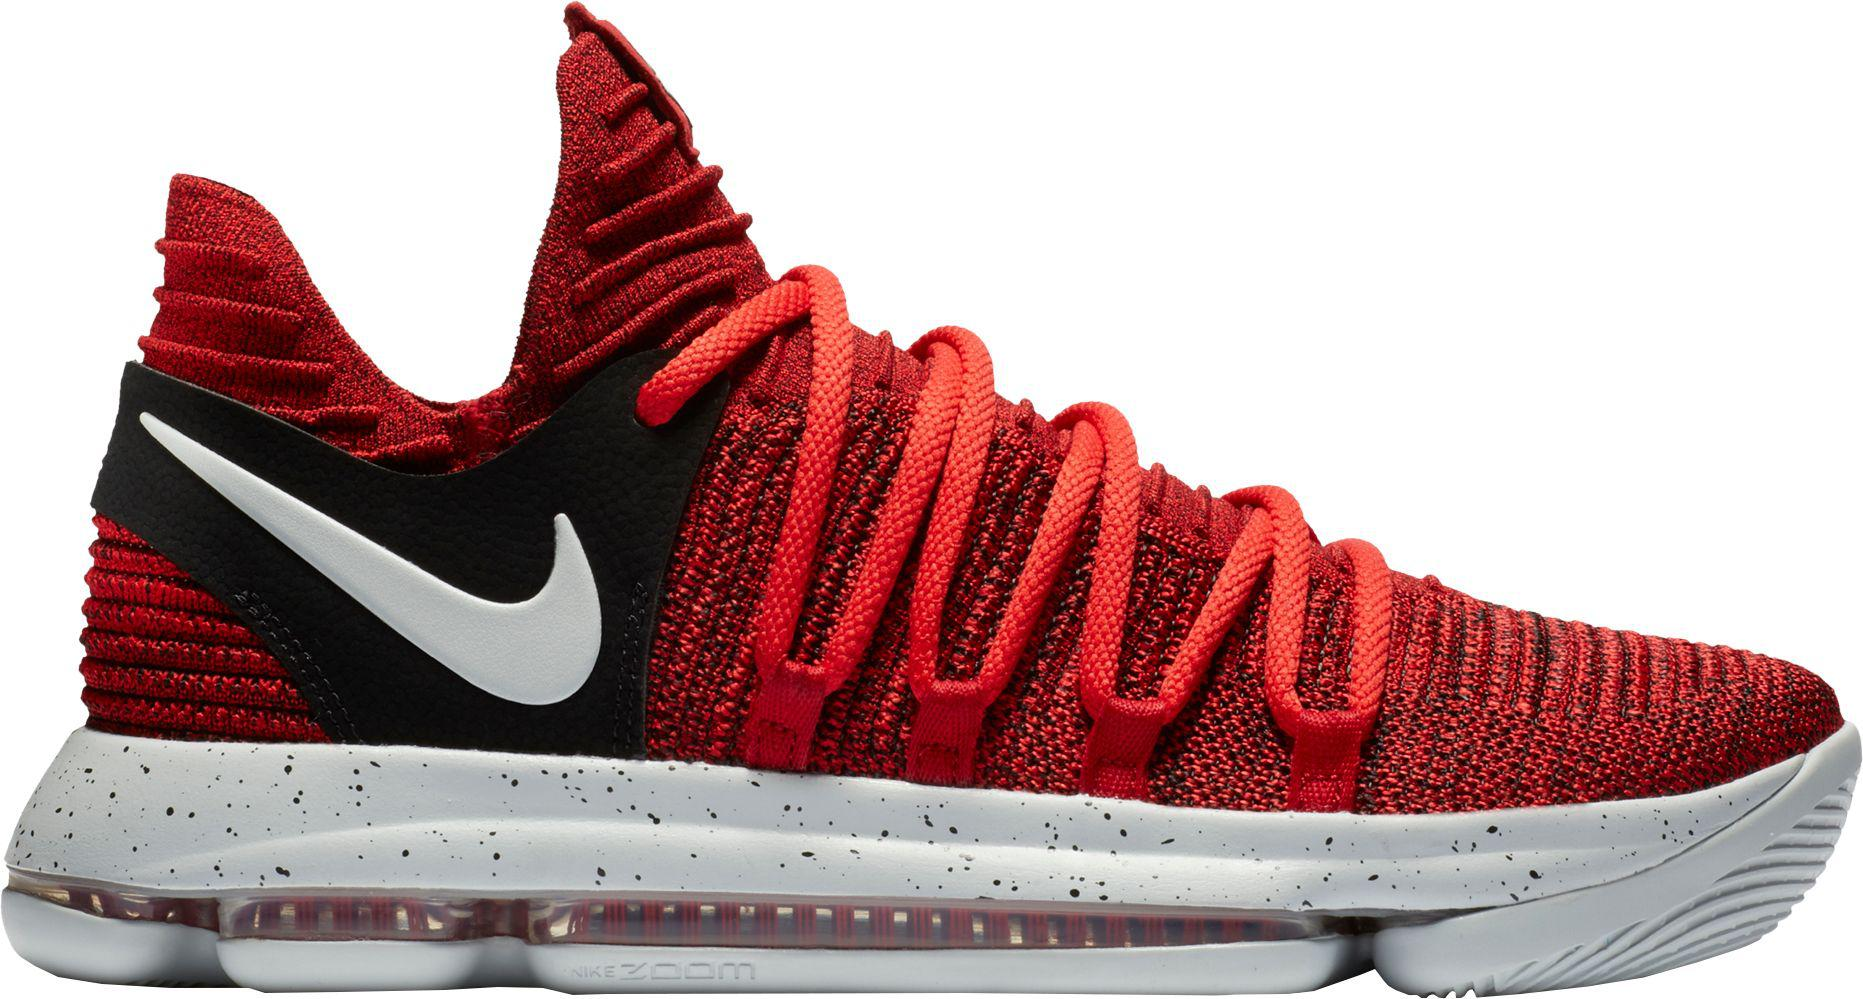 Lyst - Nike Zoom Kd 10 Basketball Shoes in Red for Men 8fce930a5